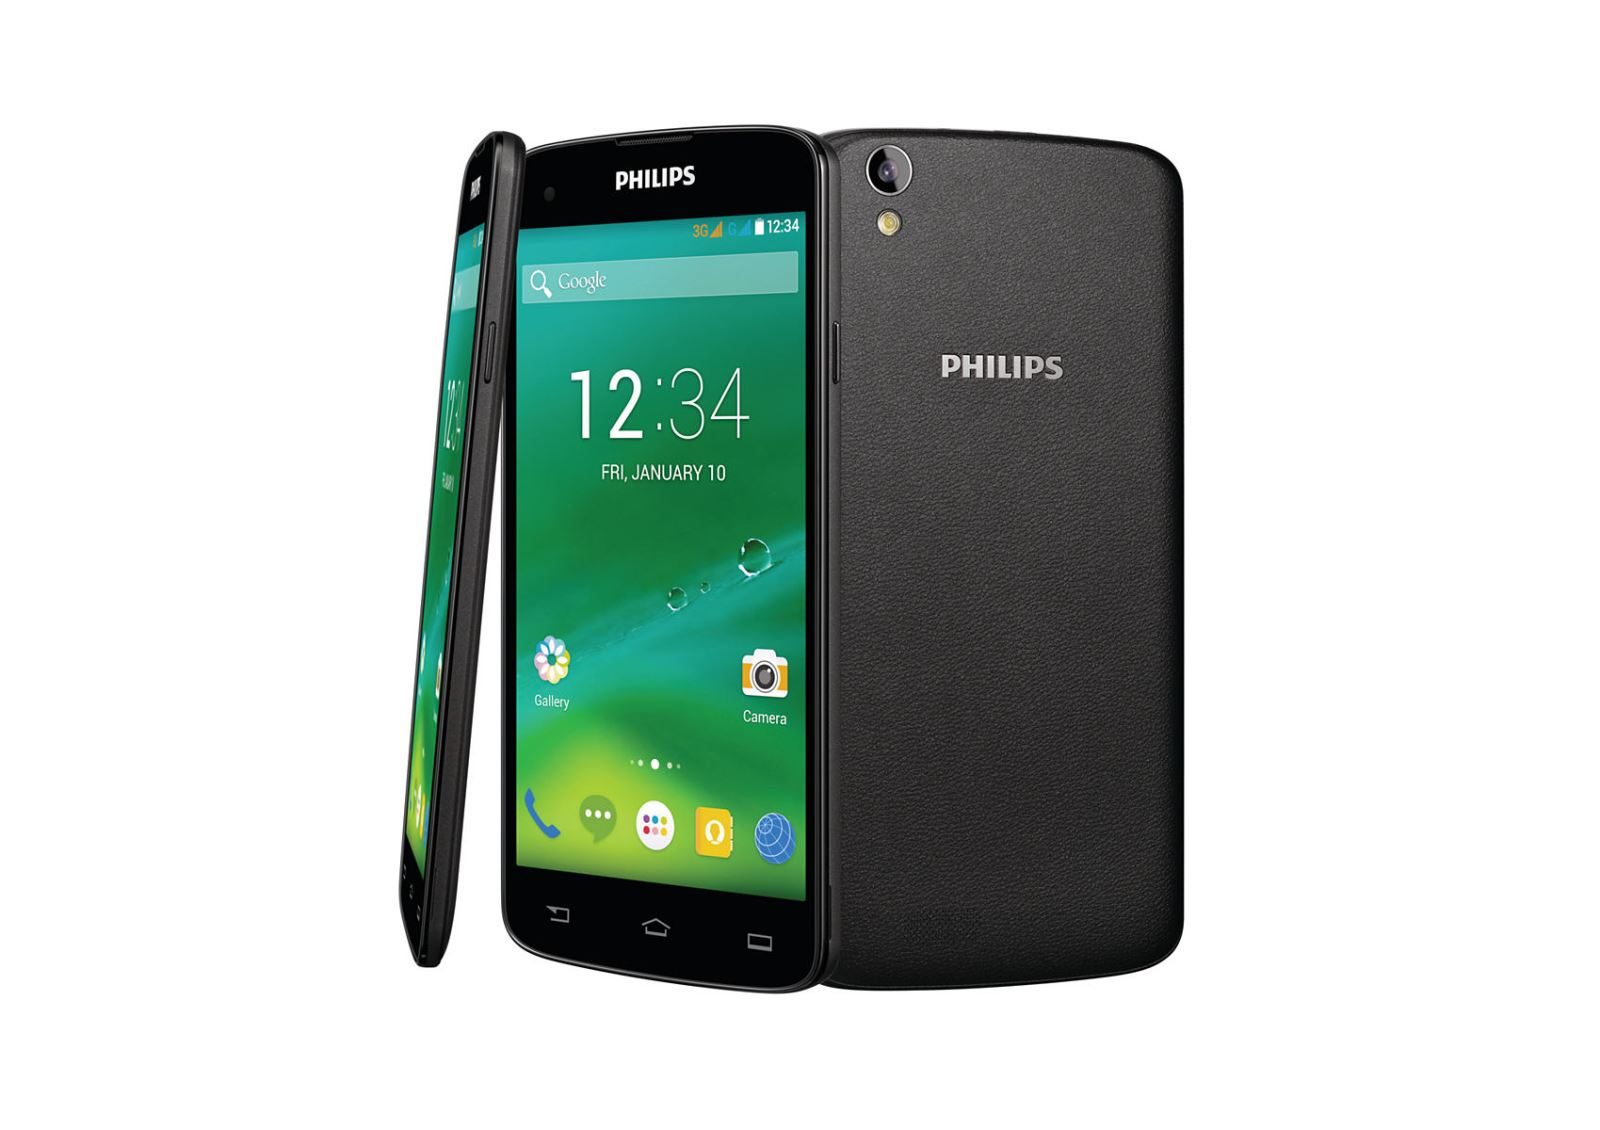 thiết kế của Philips Xenium I908